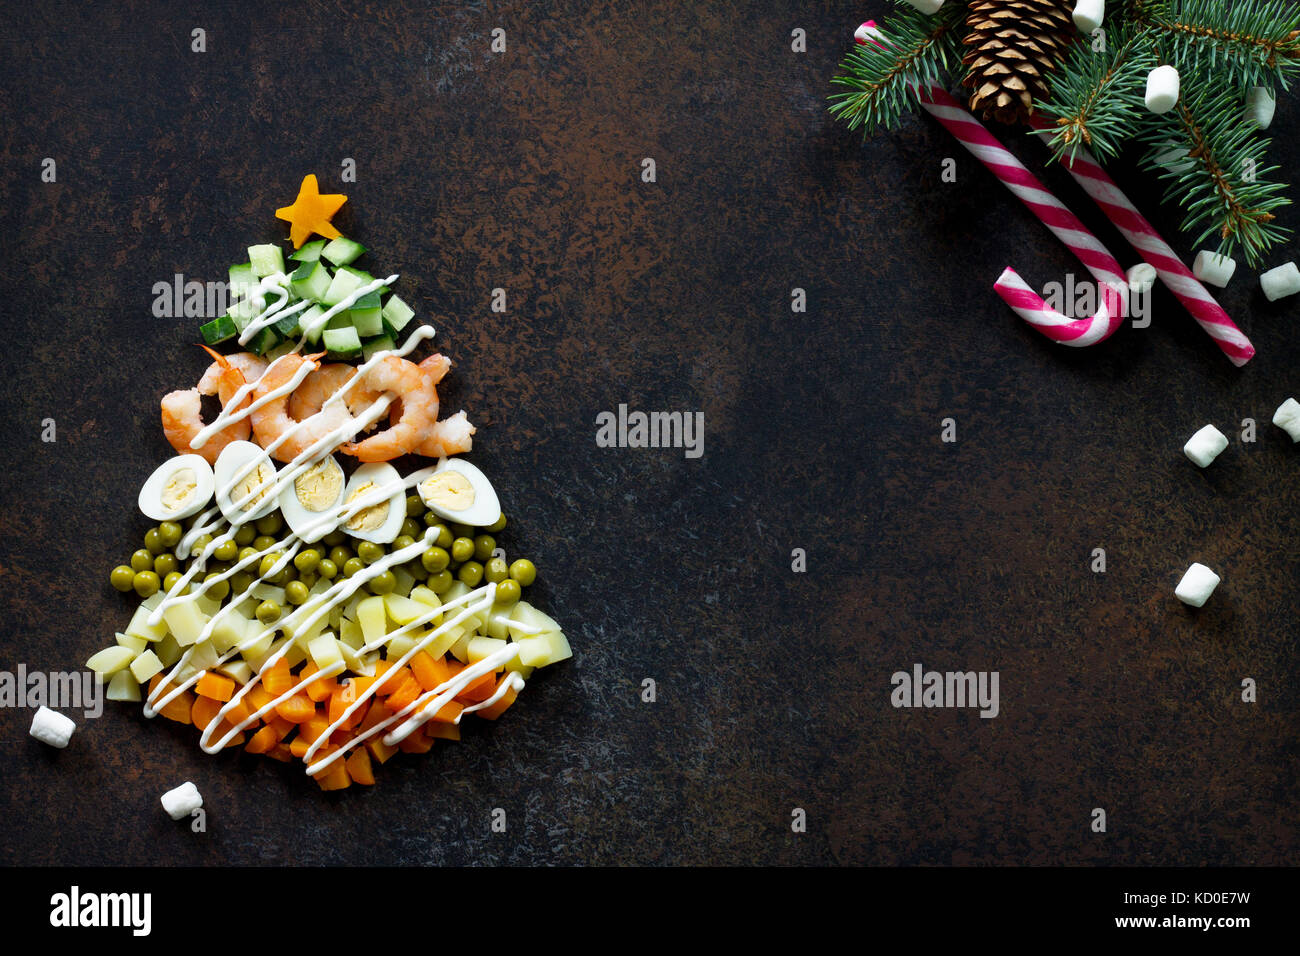 Christmas tree from a salad olivier on a brown rusty stone or metal background. Top view with a copy. Stock Photo